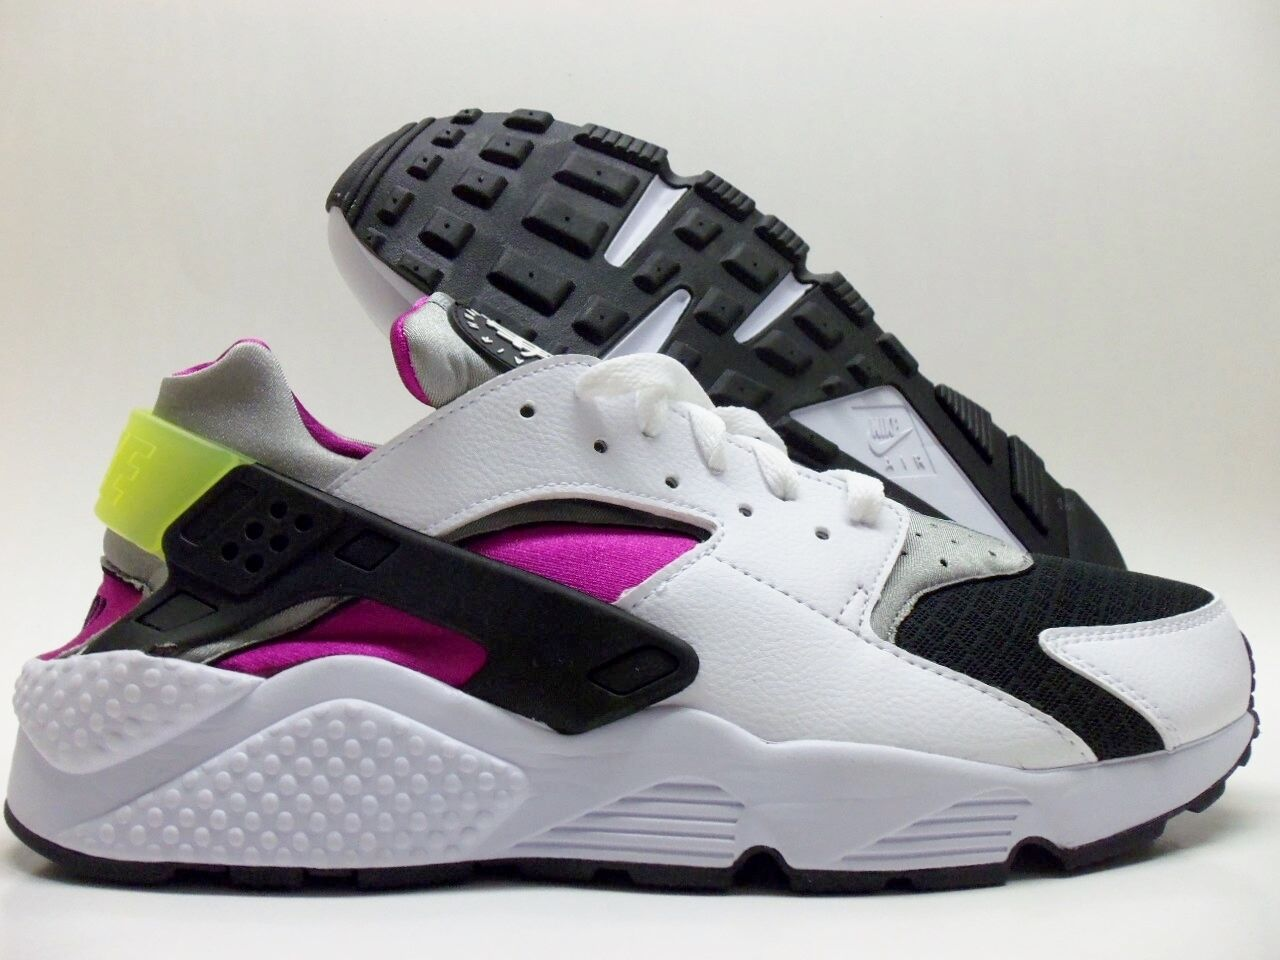 NIKE BLACK/WHITE-MAGENTA AIR HUARACHE ID TRAINER BLACK/WHITE-MAGENTA NIKE SIZE MEN'S 12 [777330-991] 040729